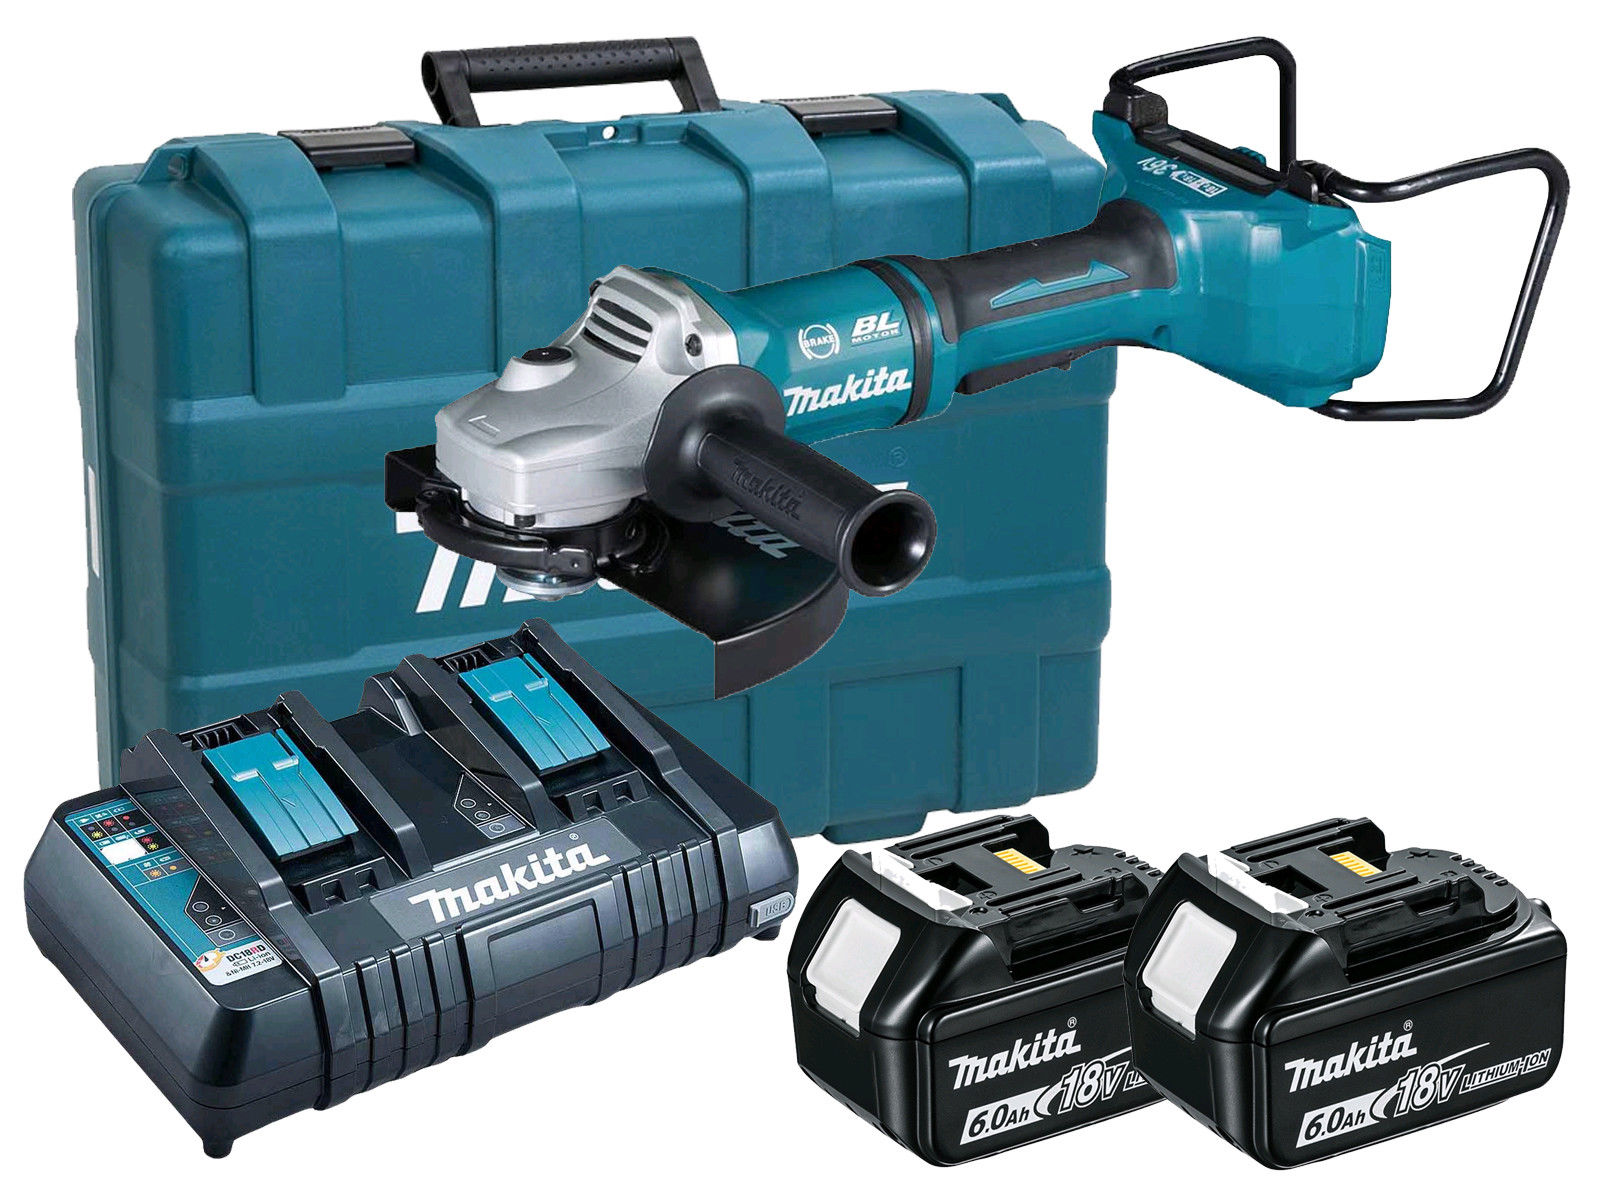 Makita DGA900 36V (Twin 18V) Brushless 230mm Angle Grinder LXT - 6.0Ah Pack